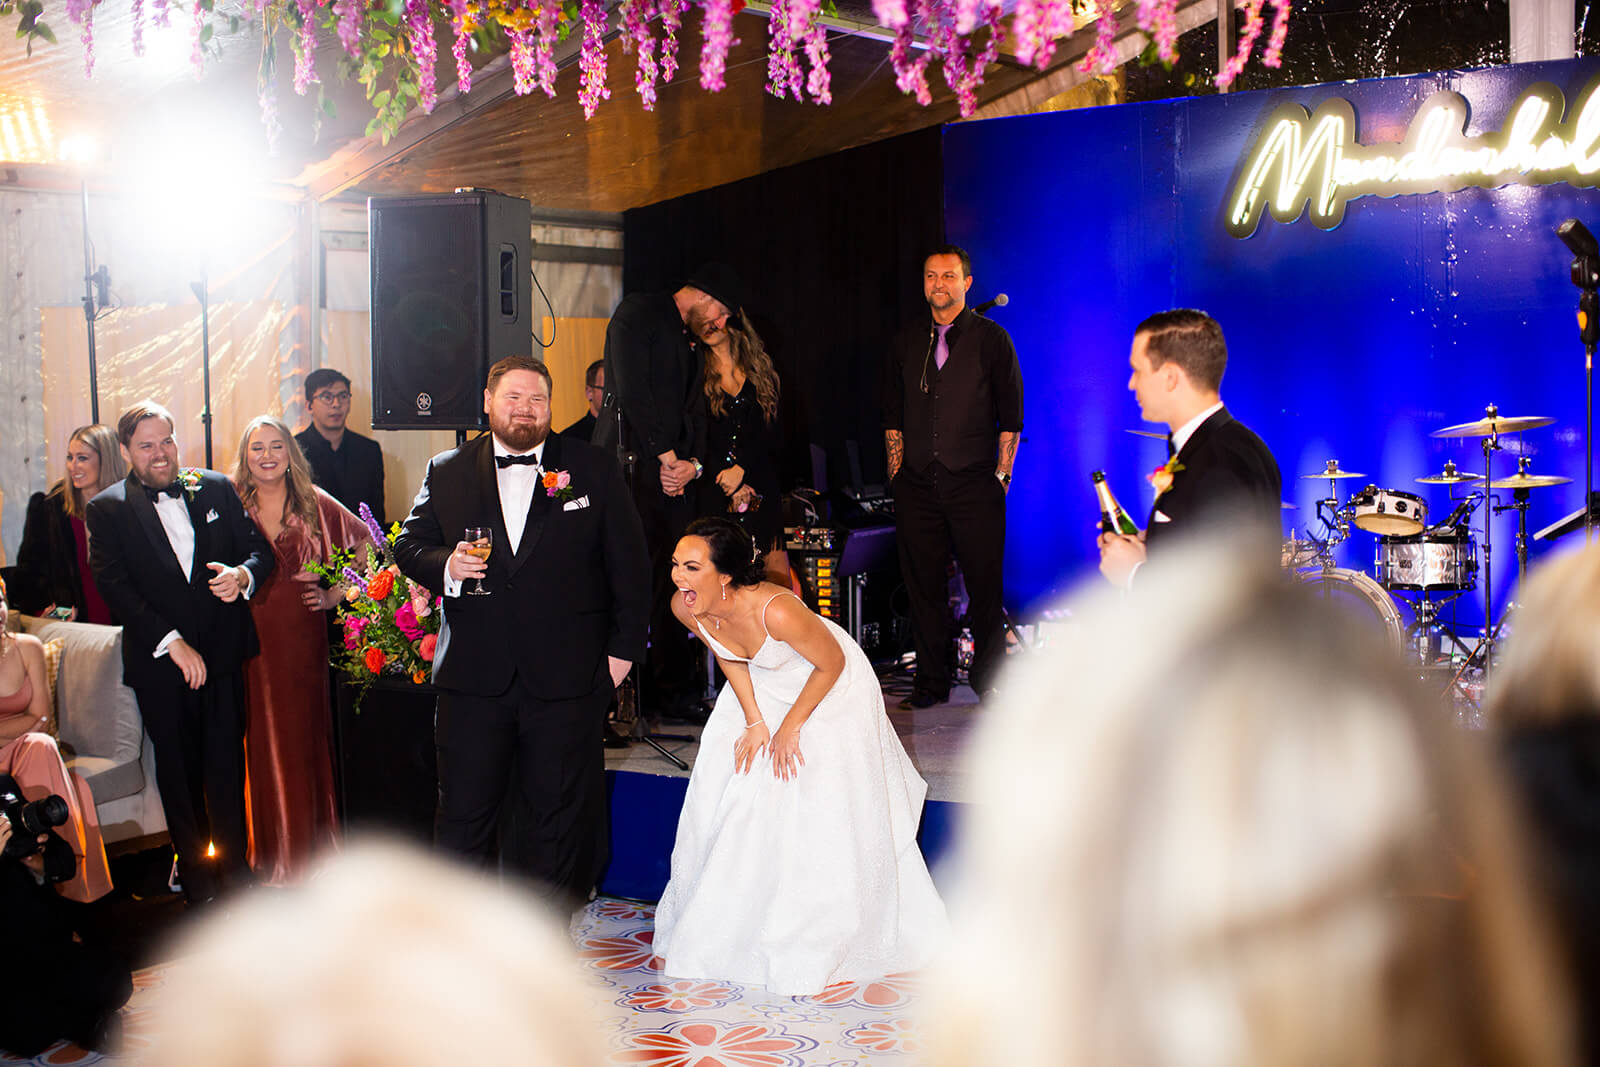 fiesta wedding, wedding, houston, texas, houston texas, photography, videography, maracas, senorita, senor, mariachis, htx, portrait photography, couples,